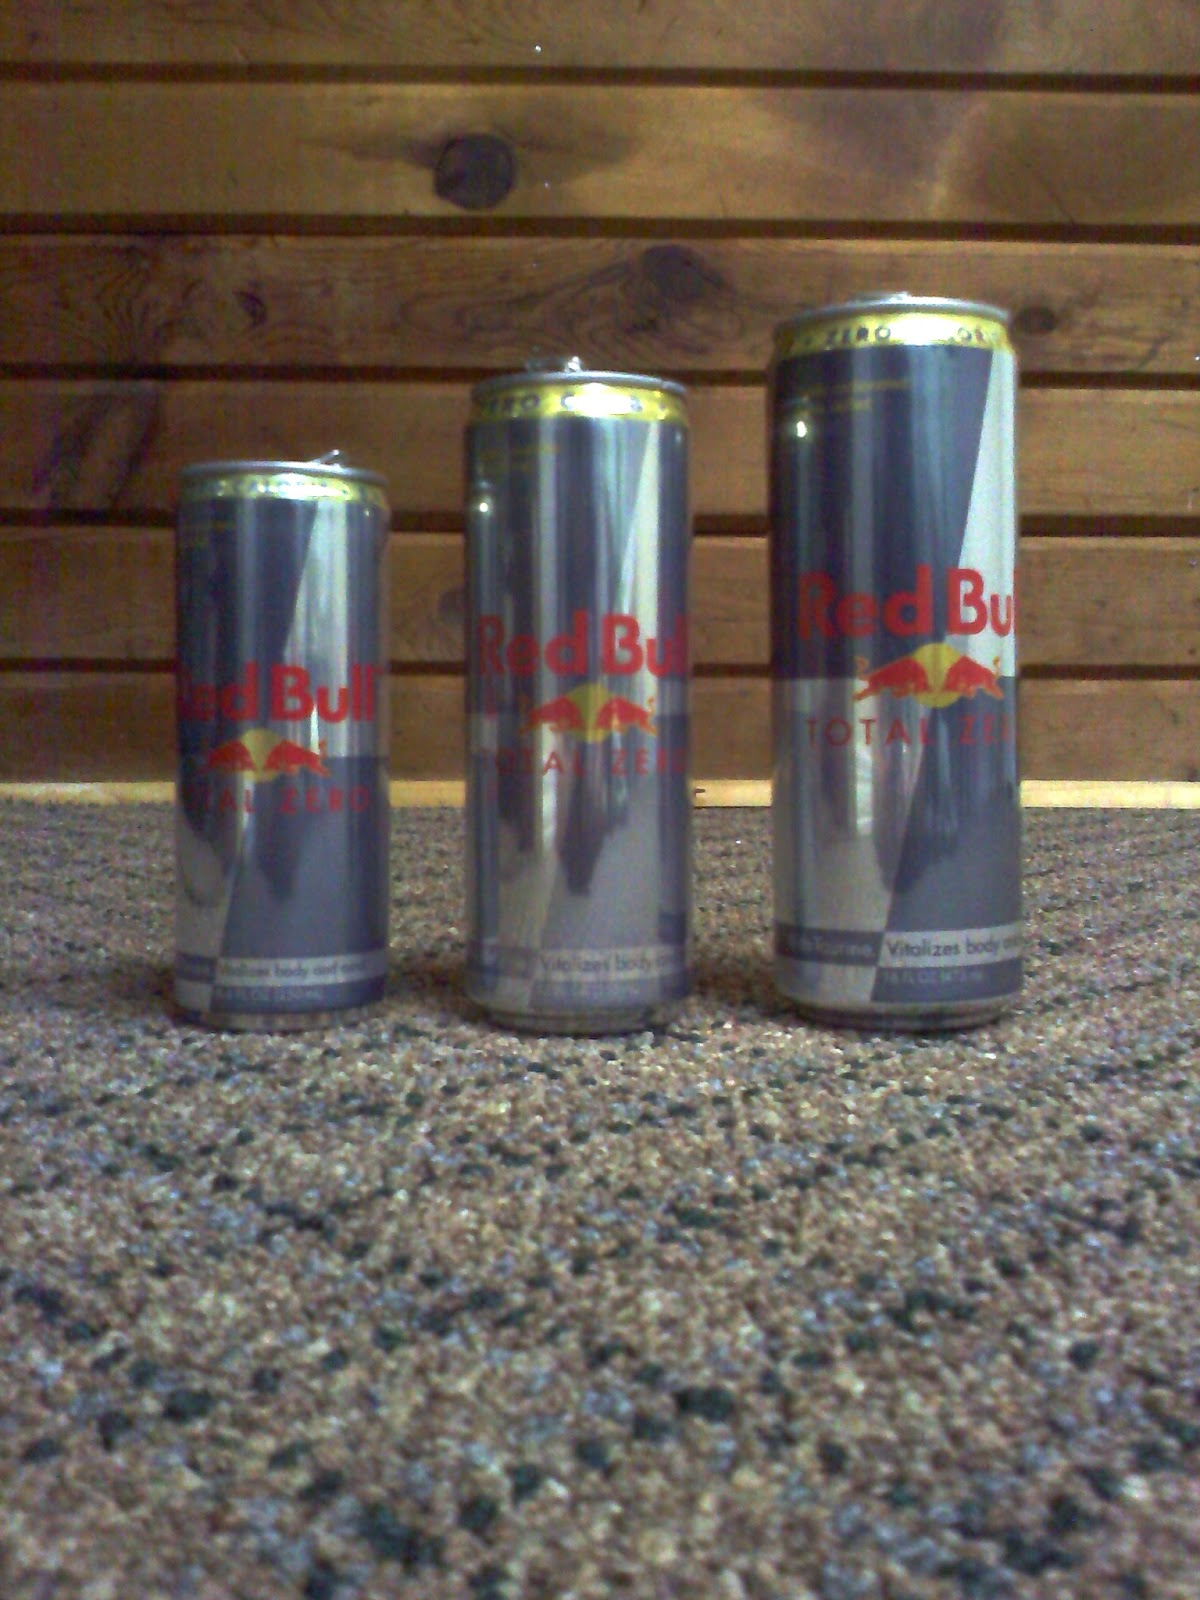 caffeine review for red bull total zero. Black Bedroom Furniture Sets. Home Design Ideas